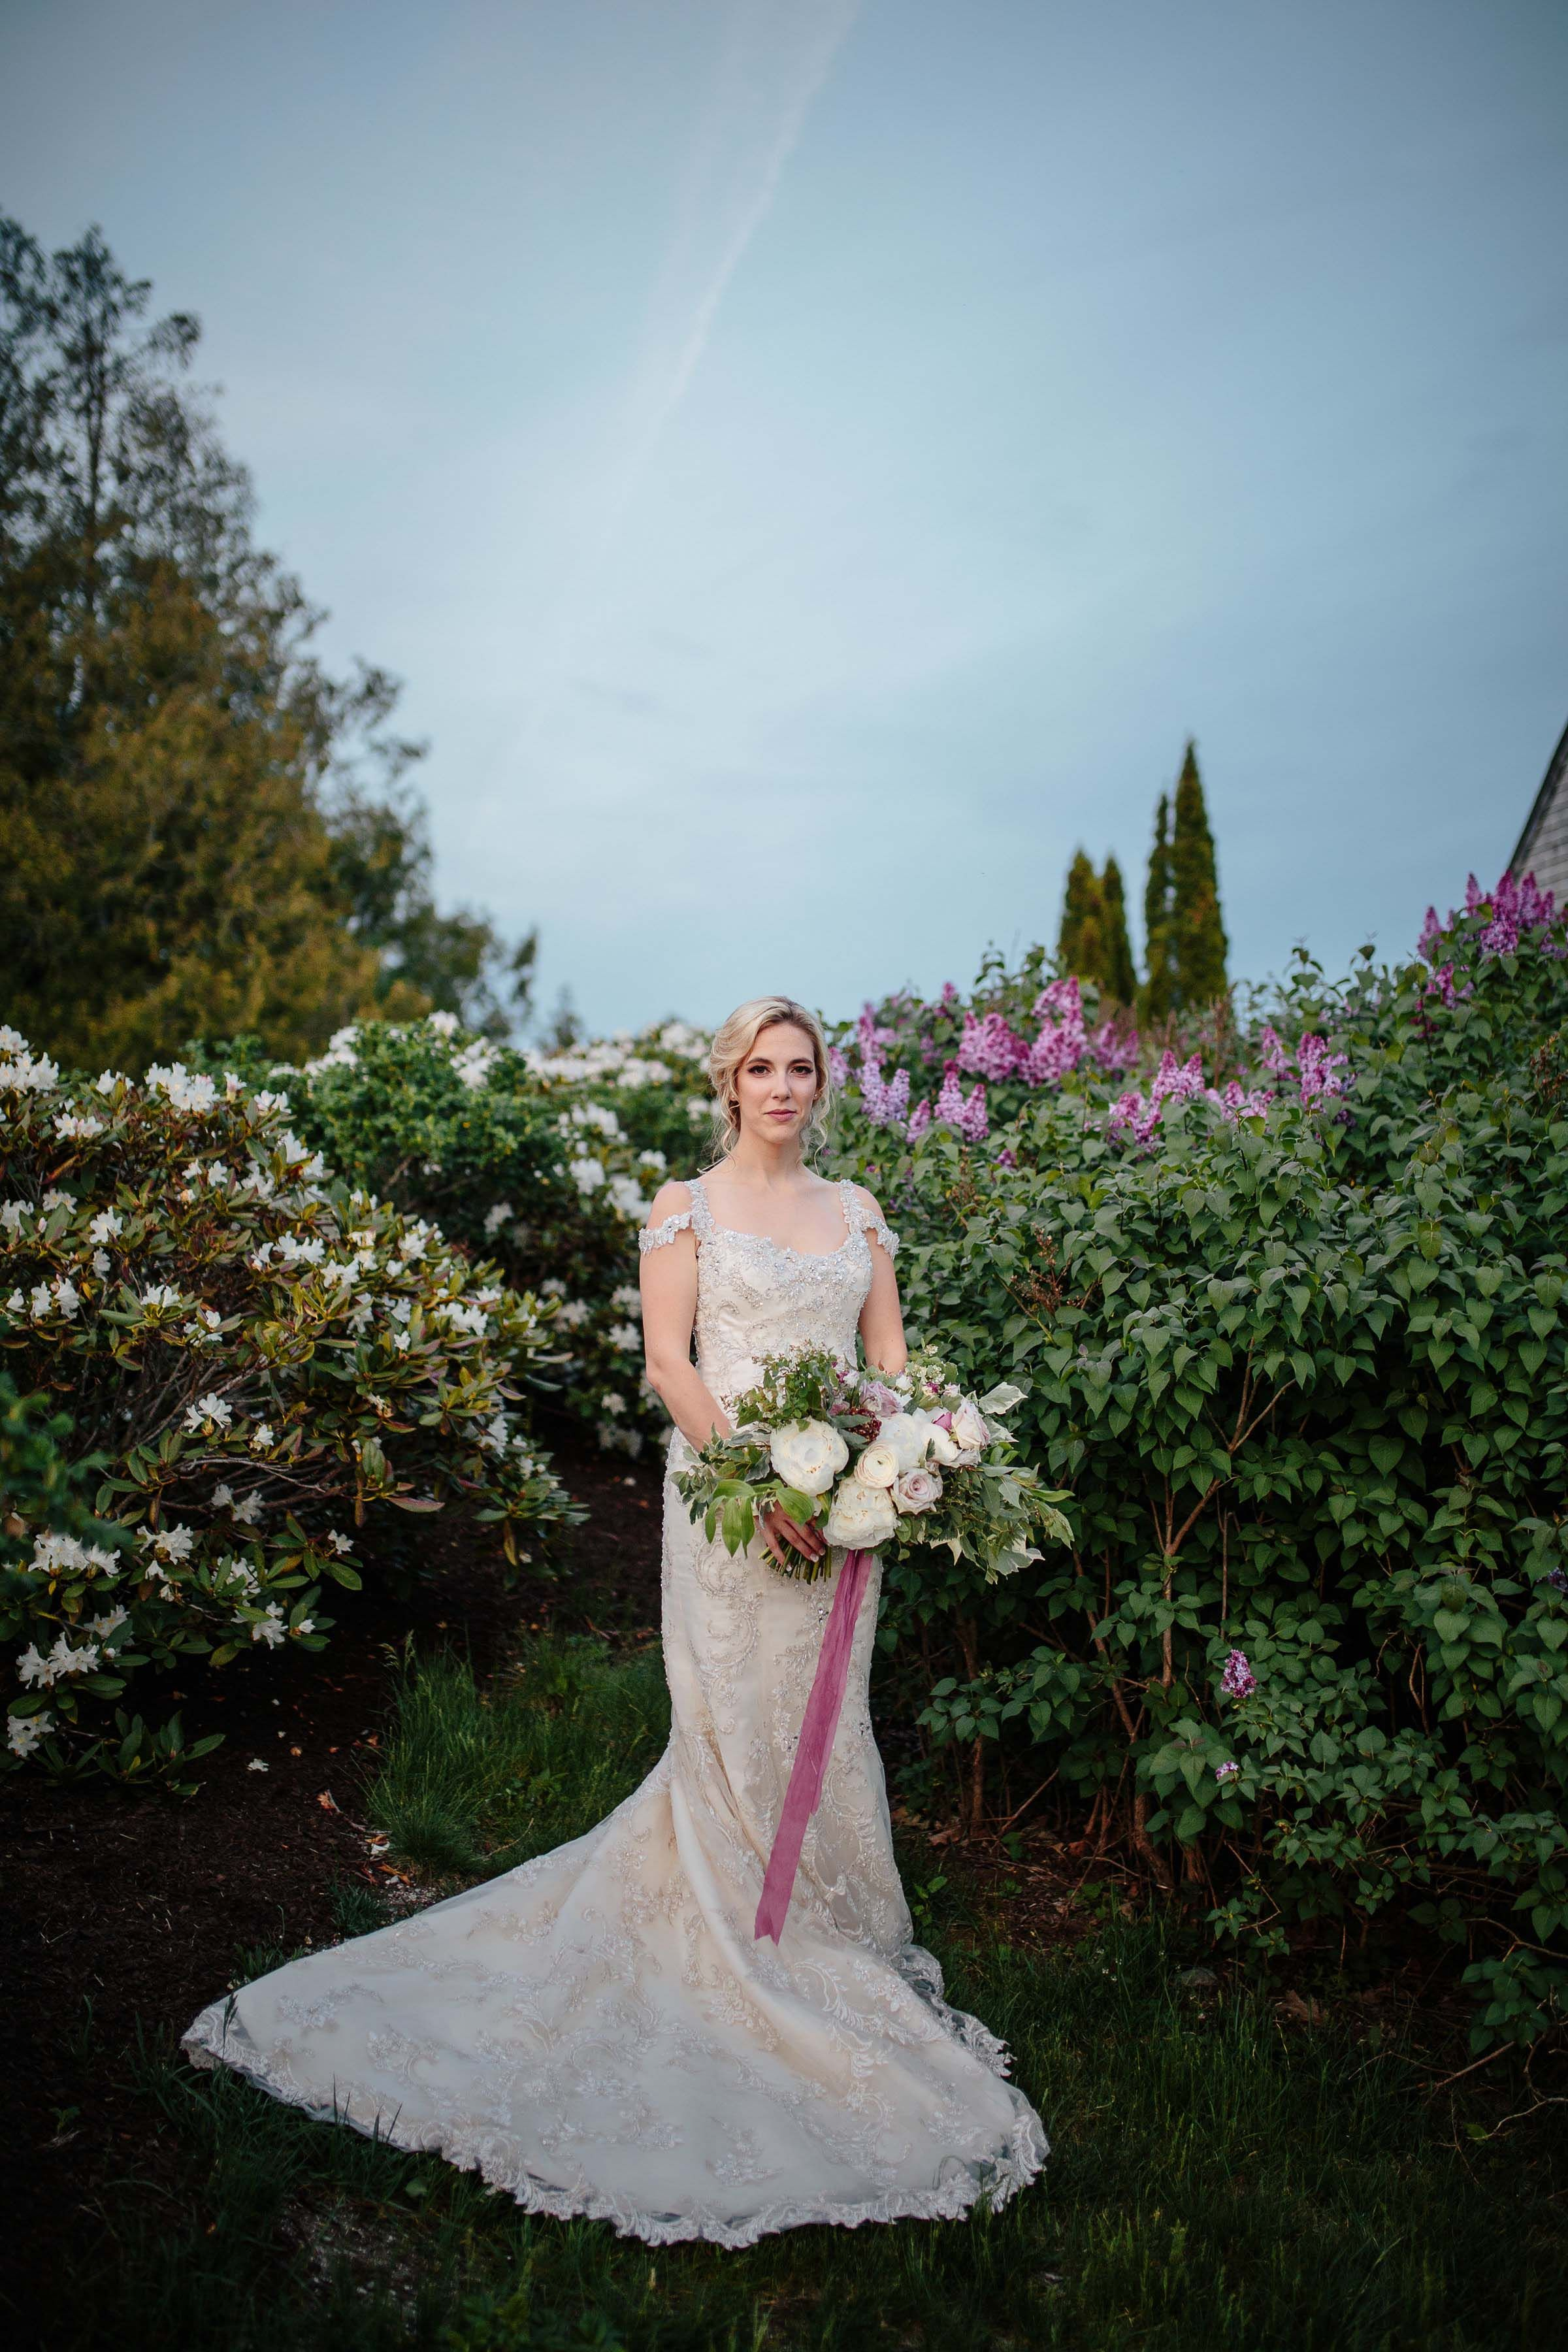 Destination Wedding Review.Real Review Stunning Venue Friendly Team Real Weddings At